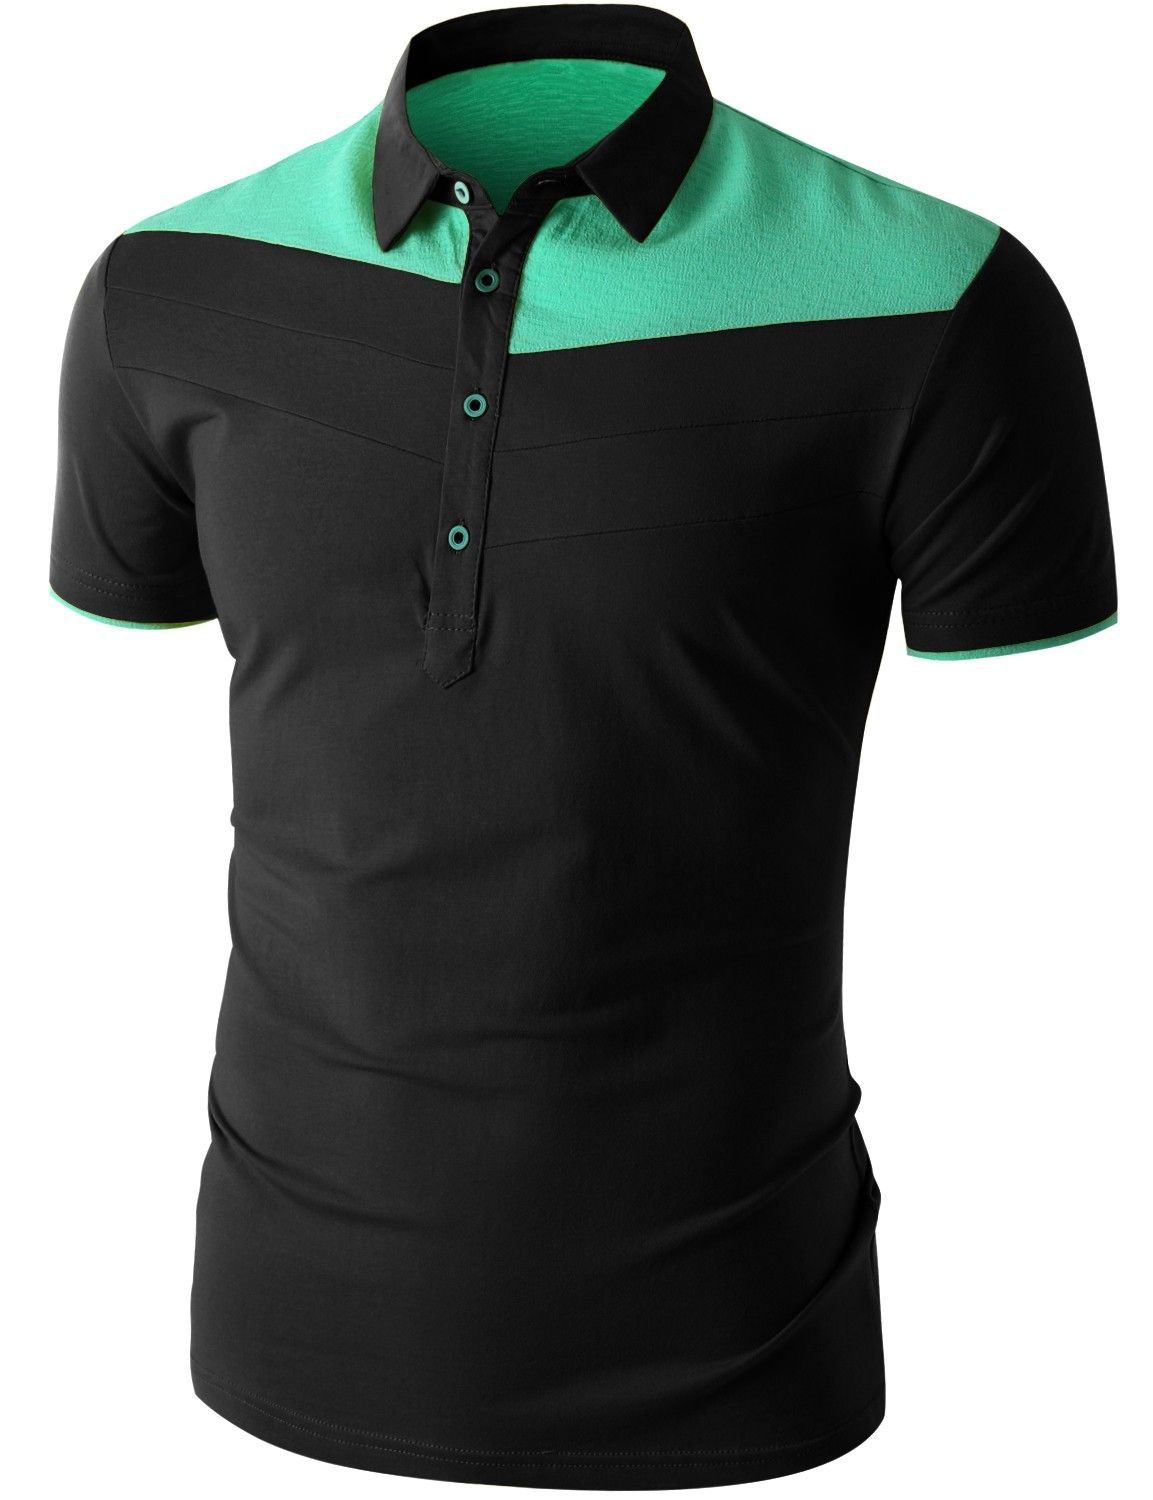 437d2e562d6 Doublju Men's Short Sleeve Polo Shirt (CMTTS018) #doublju | tee ...